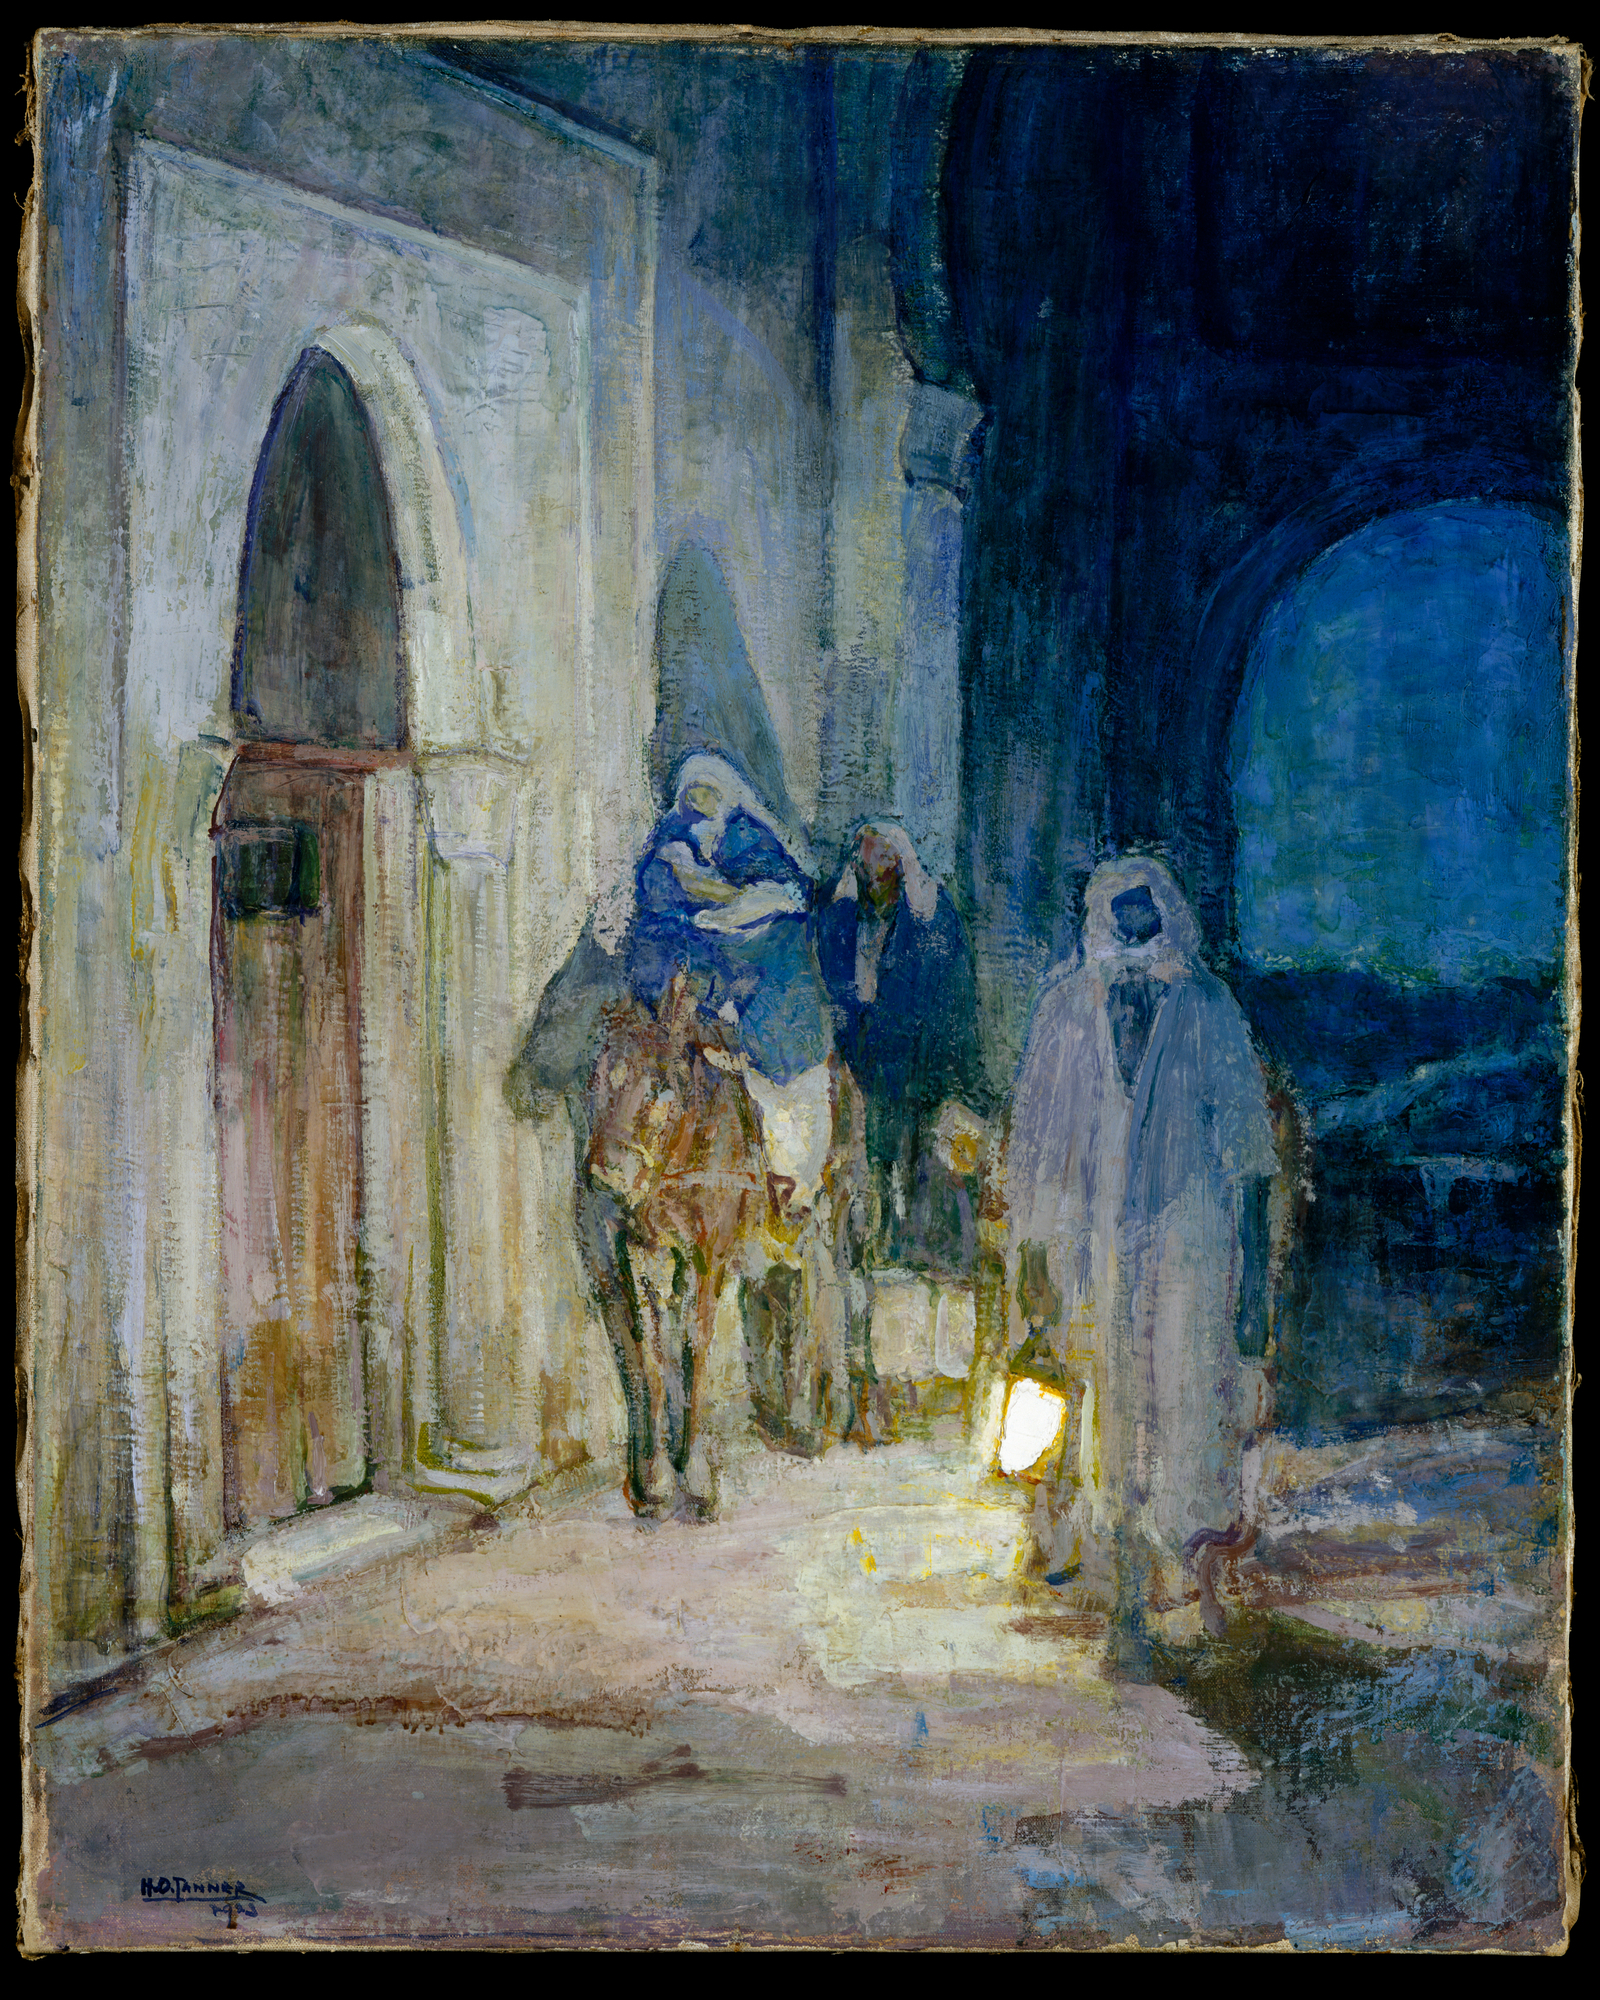 Flight into Egypt, 1923 by Henry Ossawa Tanner